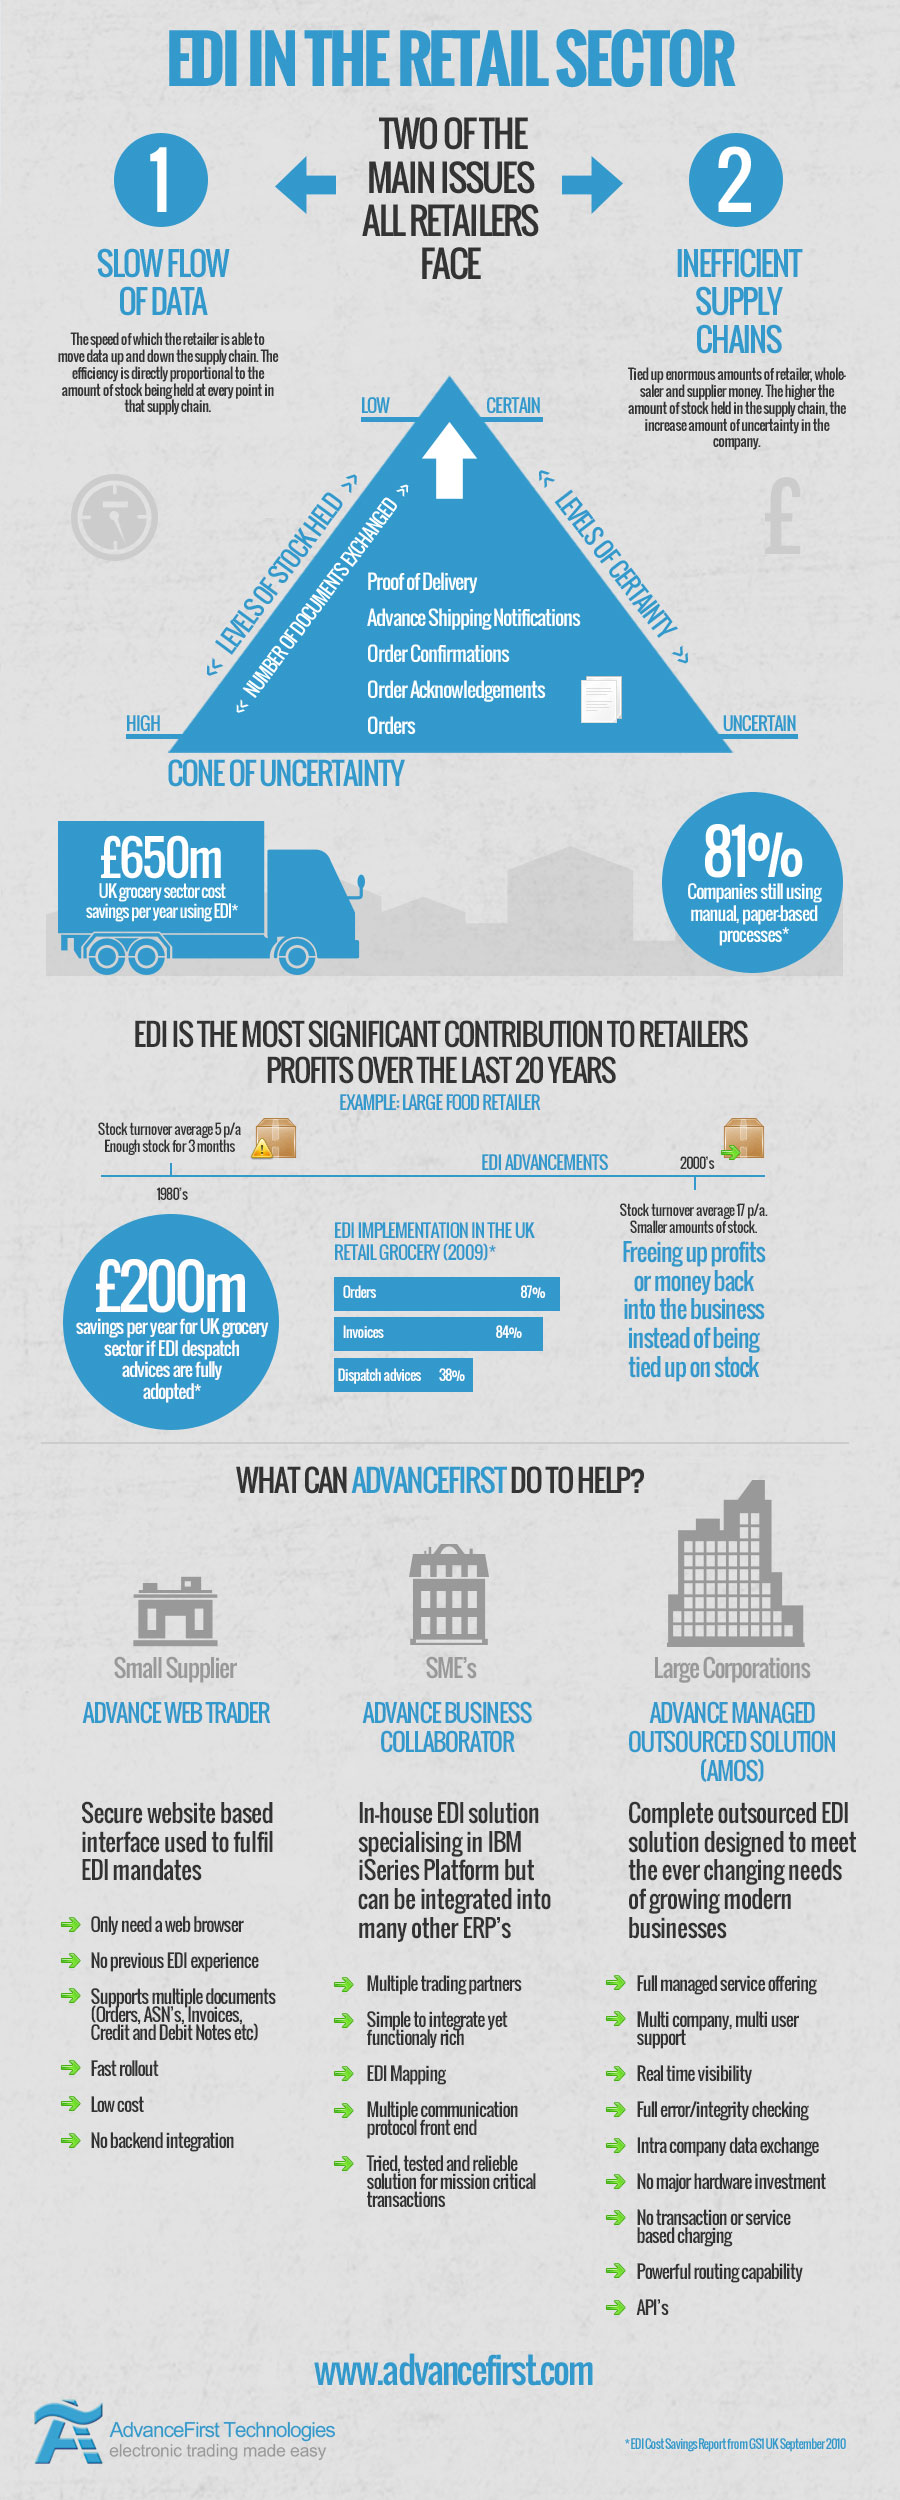 EDI in the Retail Sector Infographic